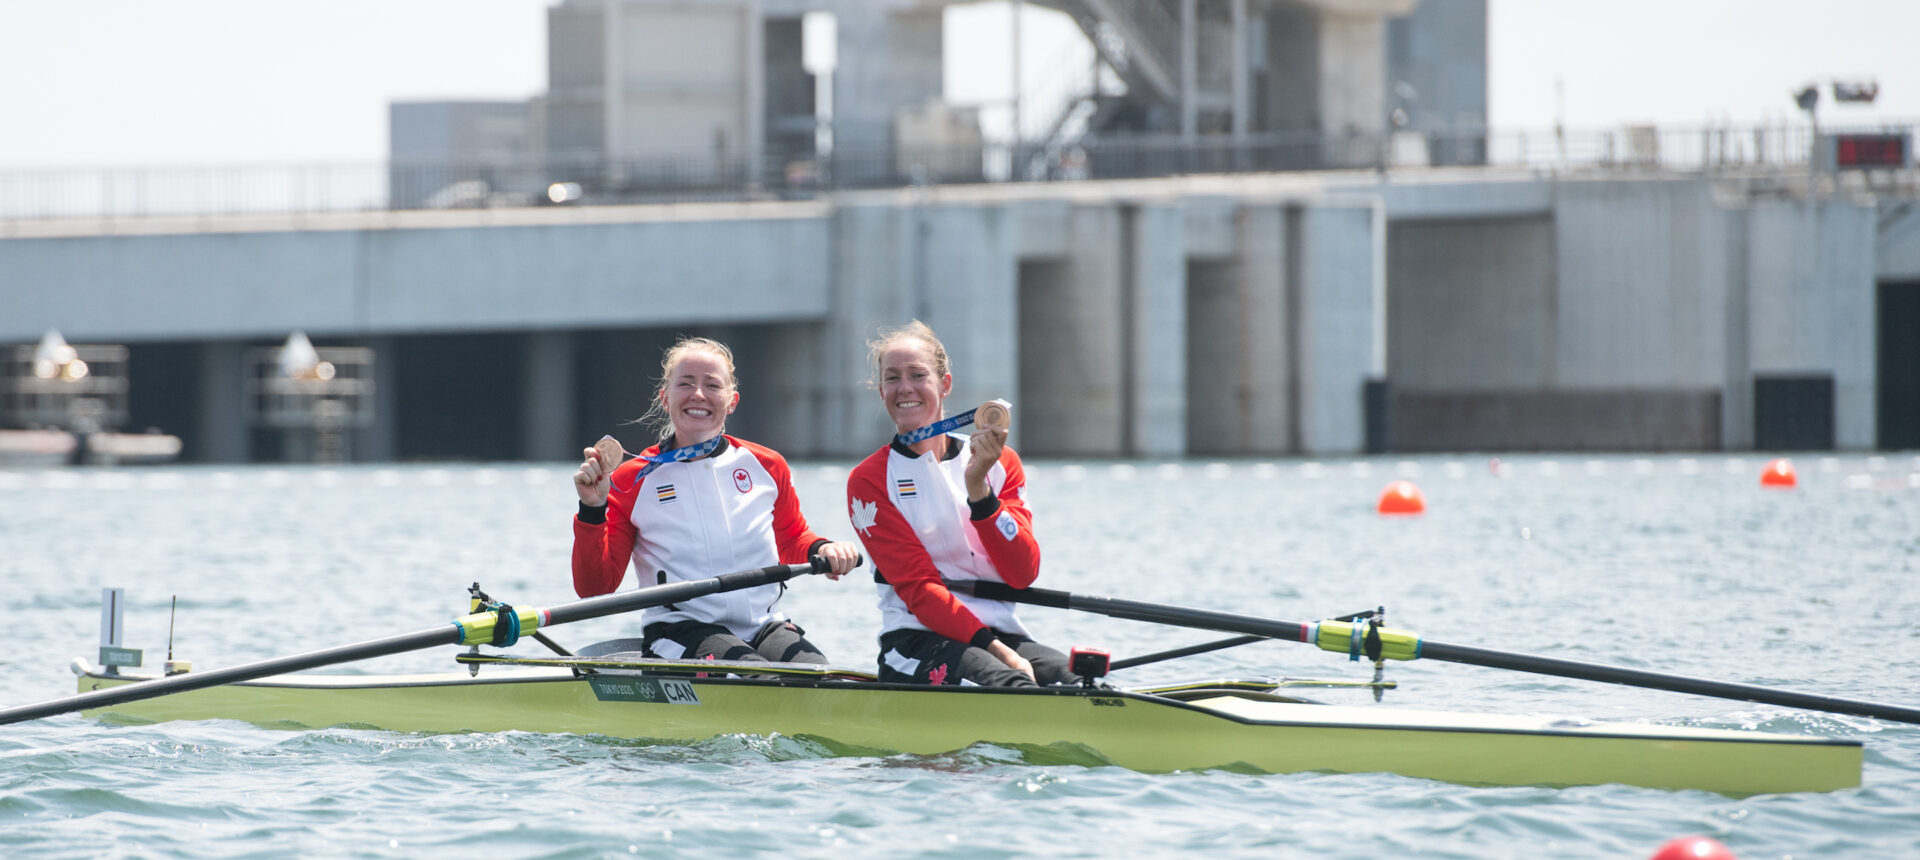 Caileigh Filmer tackles mental health challenges to win Olympic bronze